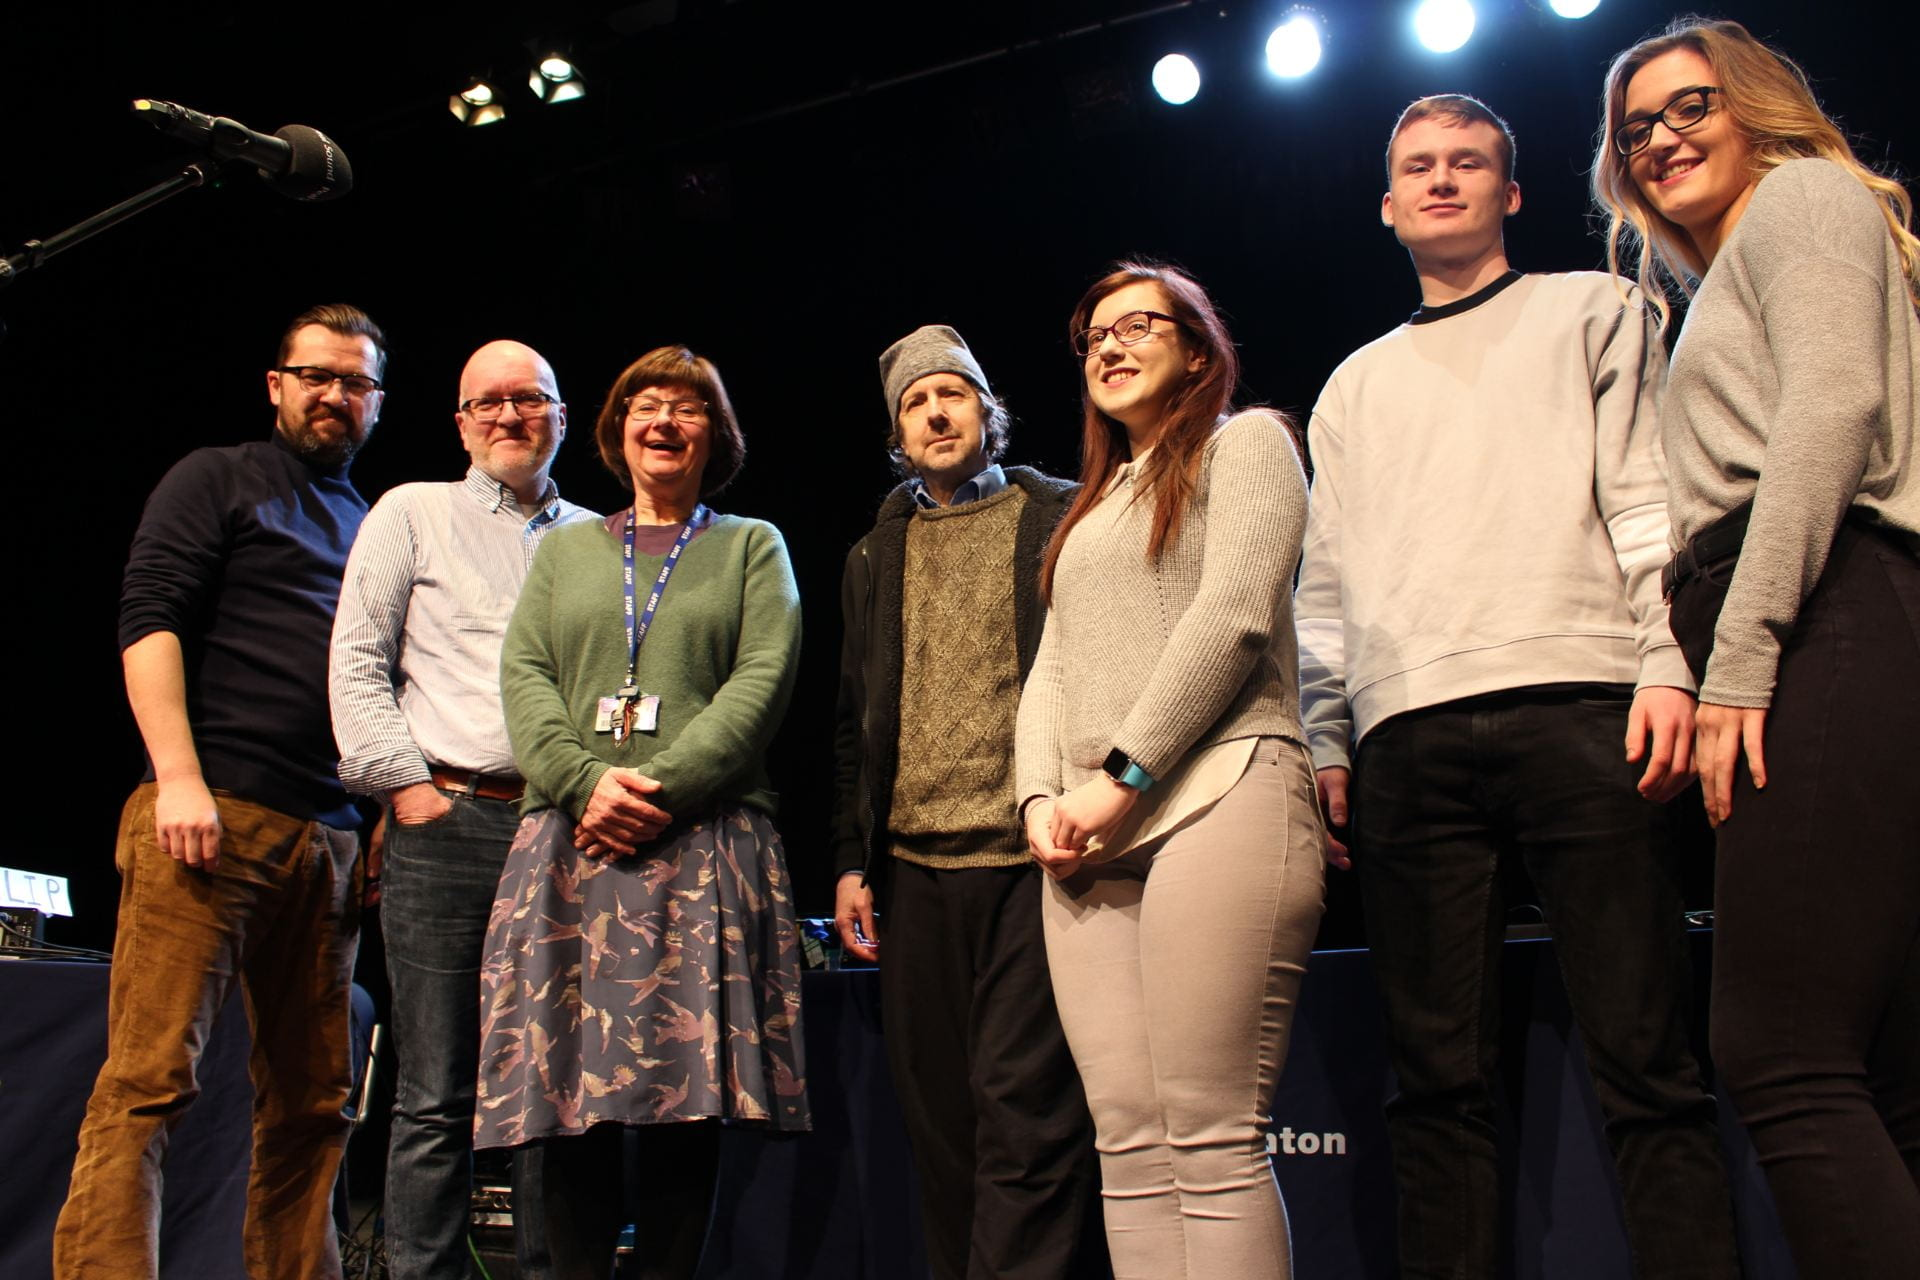 Students vs Staff on Radio 4 Quiz